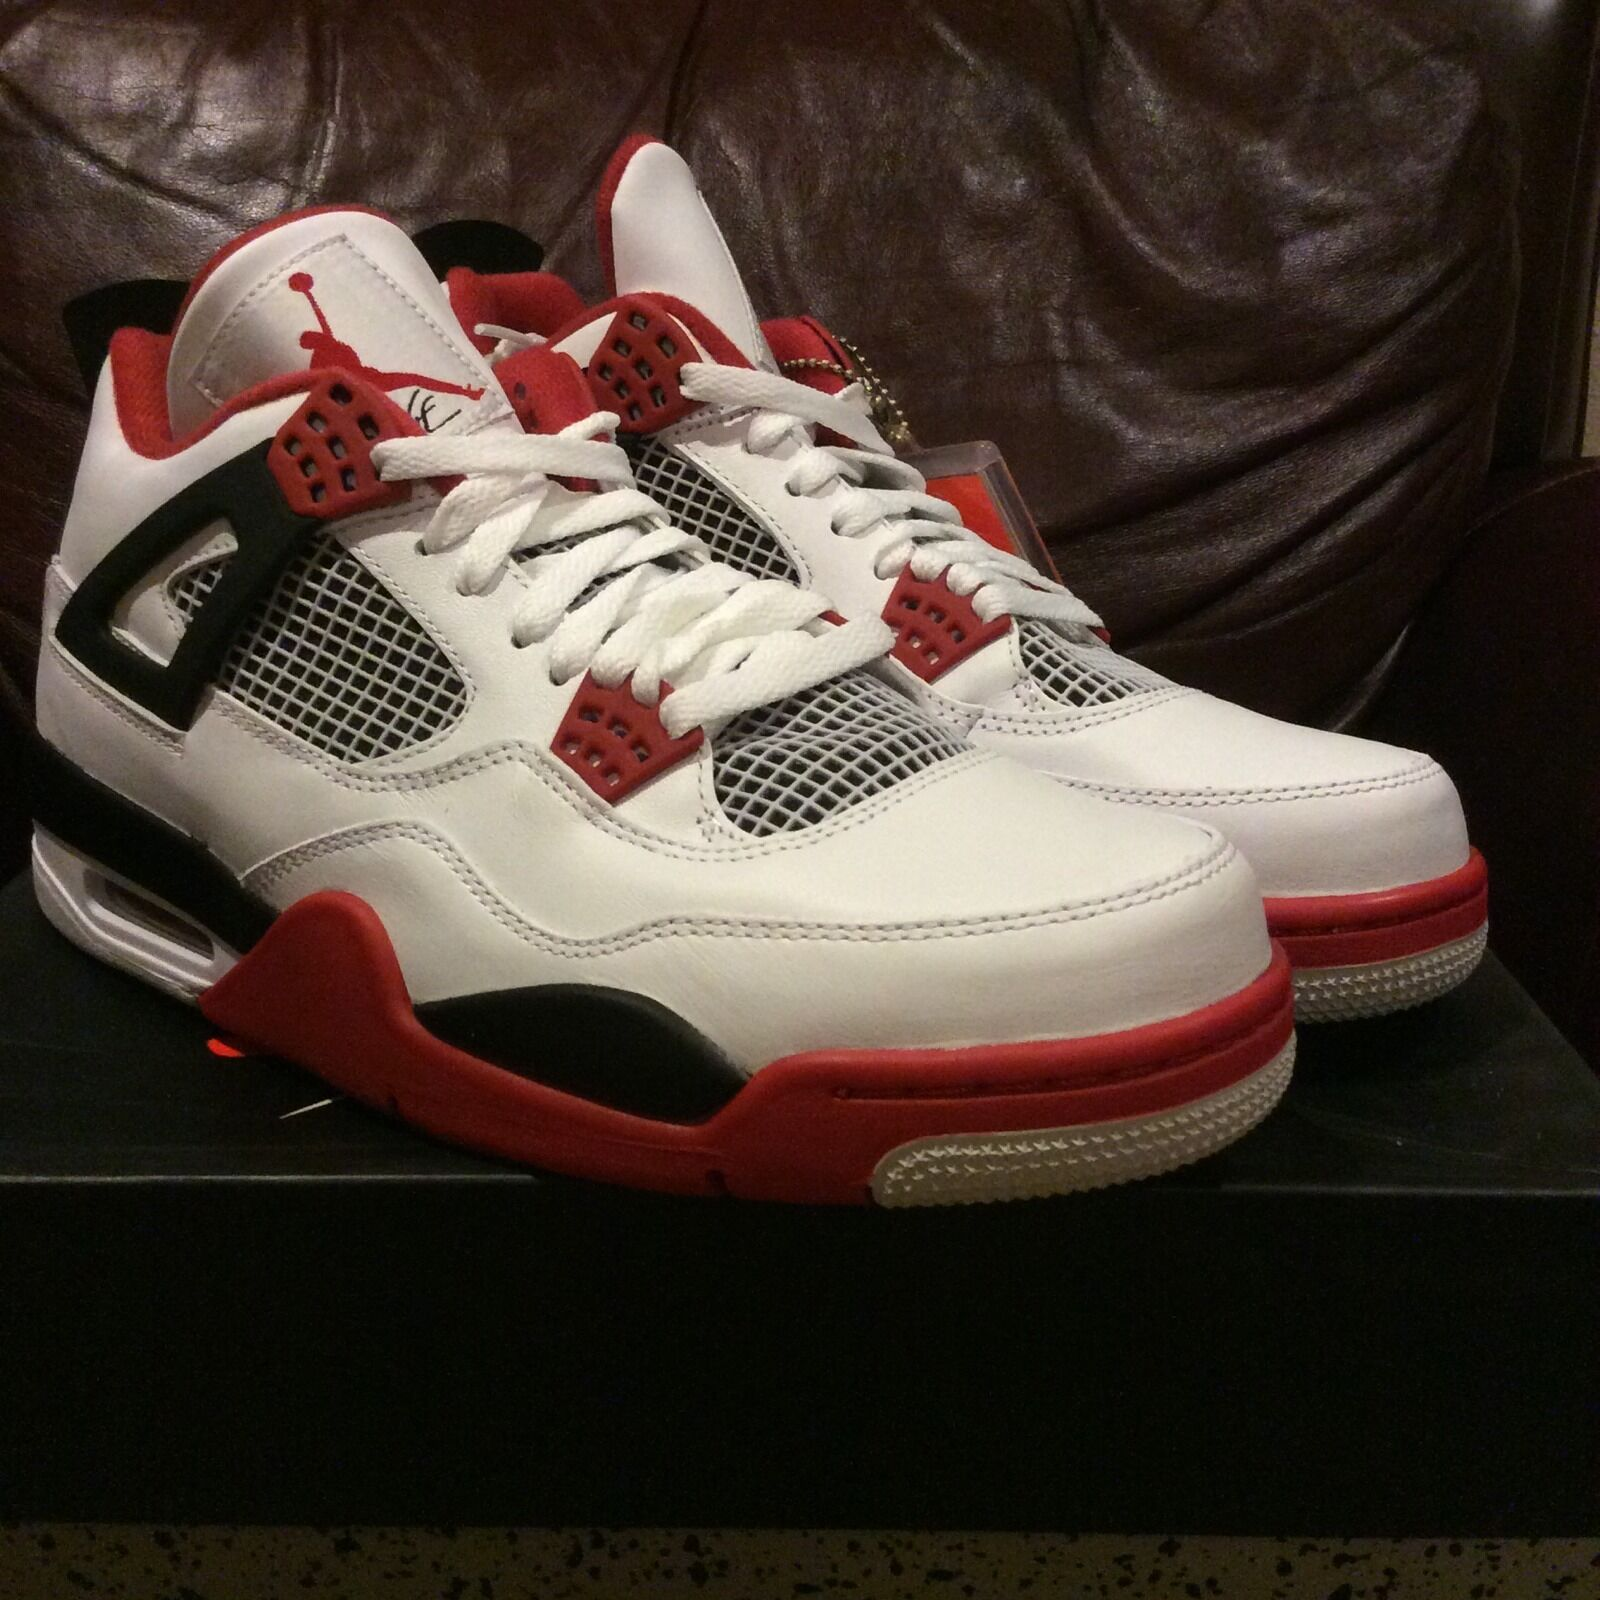 Air jordan 4 fire red 2012 size 10 100% authentic I II III IV VI VII XII XII XI